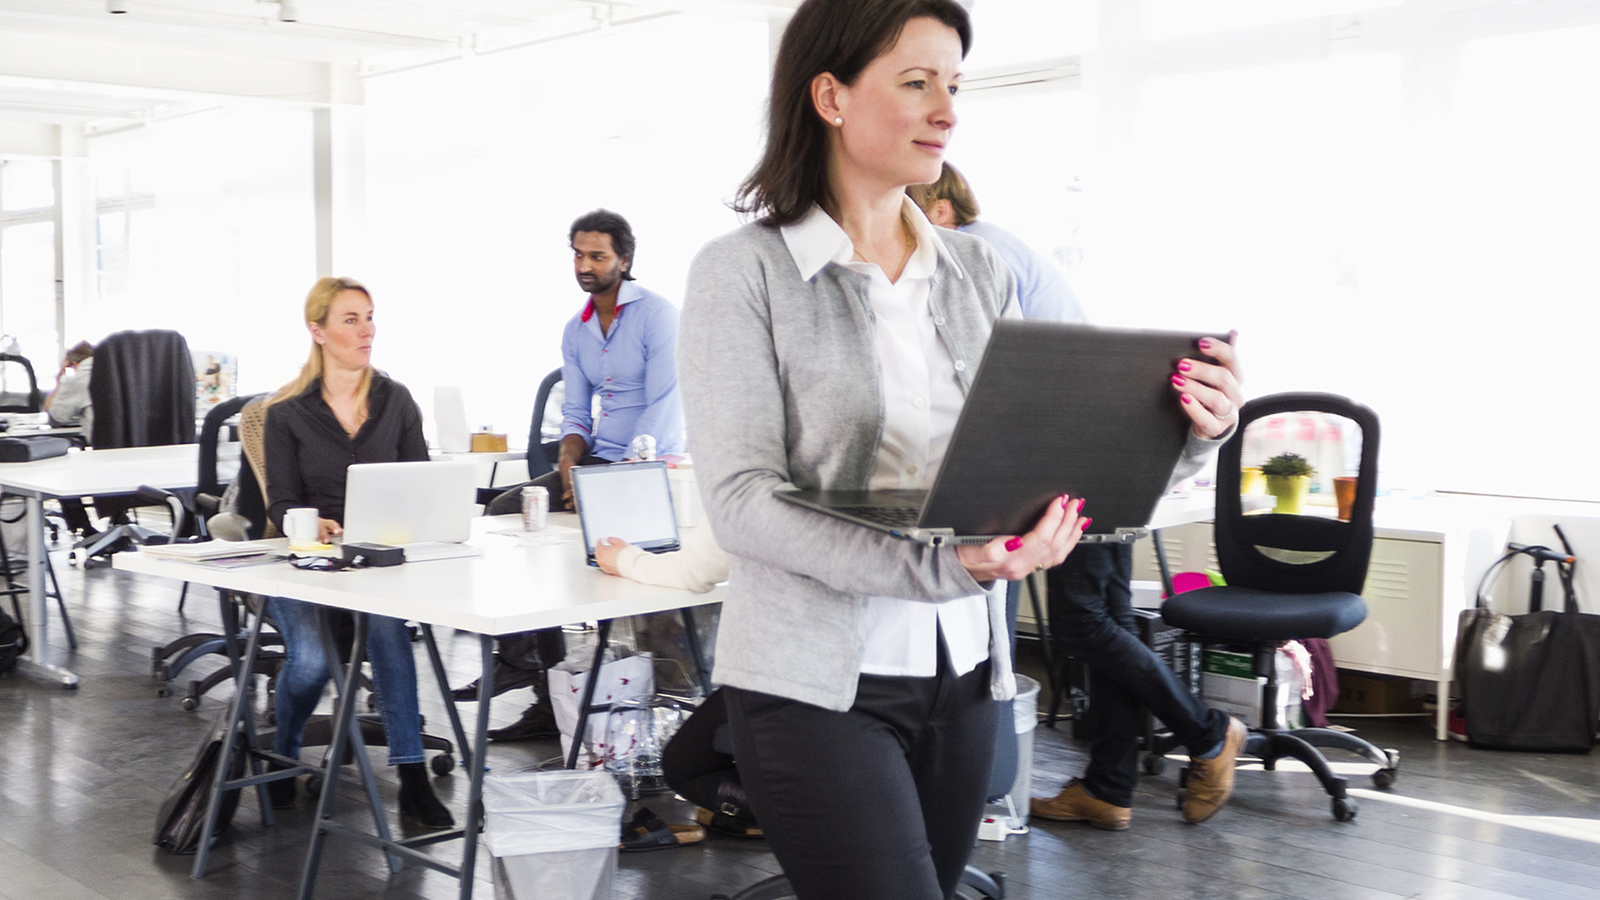 Woman with laptop walking among office tables.